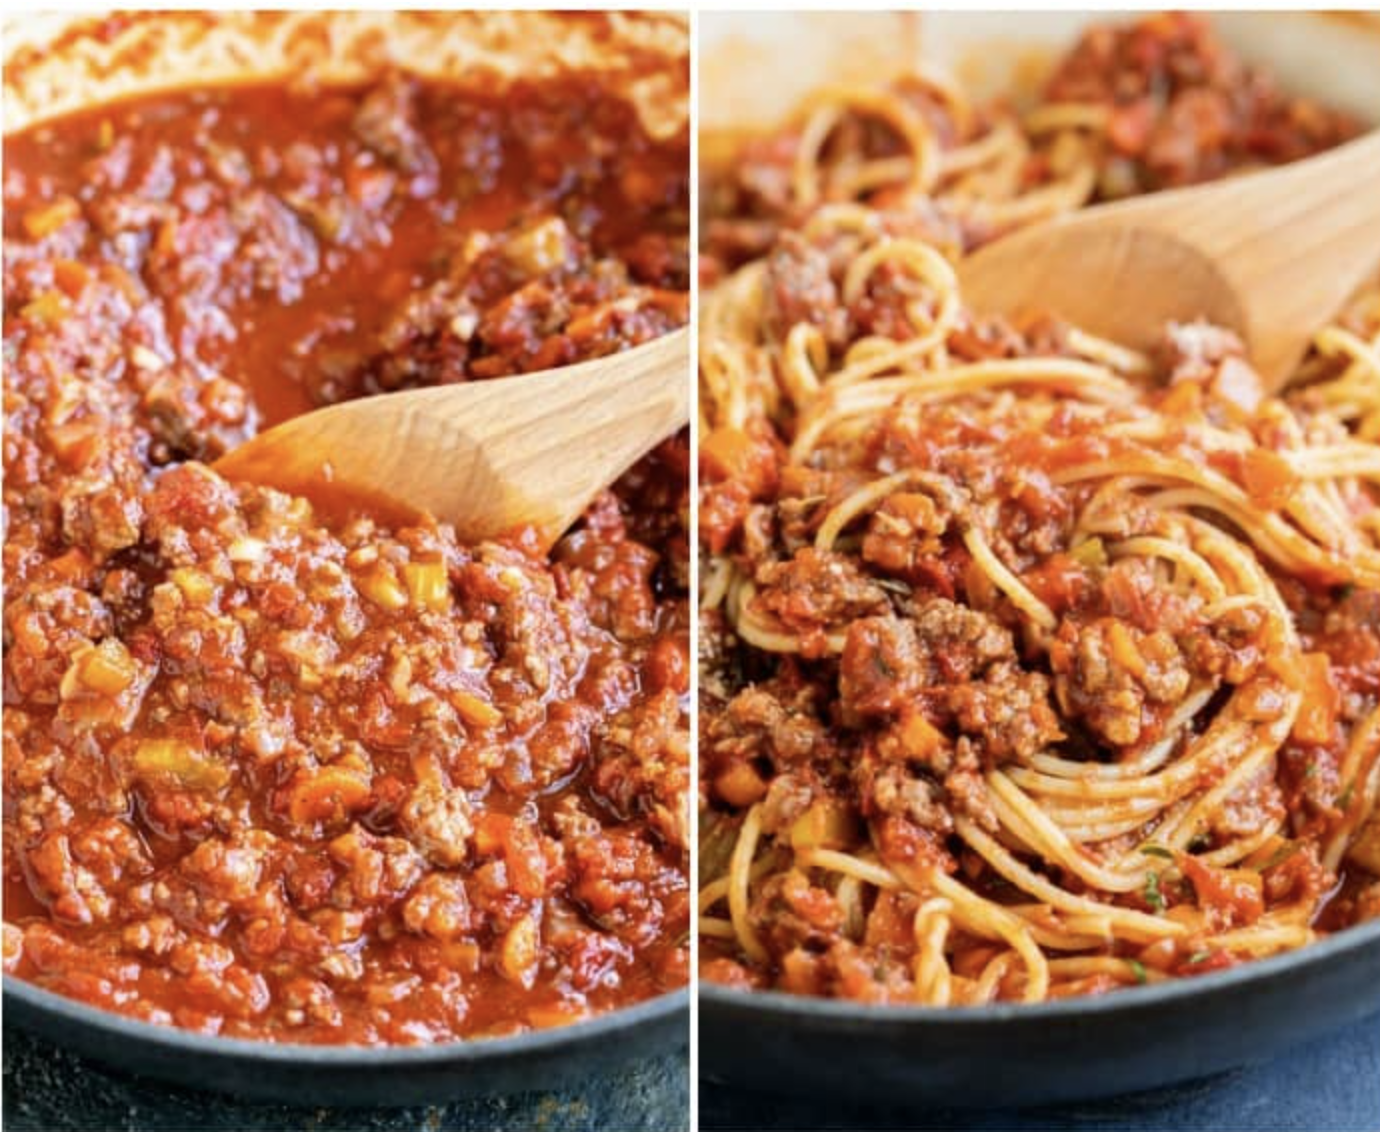 Spaghetti bolognese being stirred in a pan